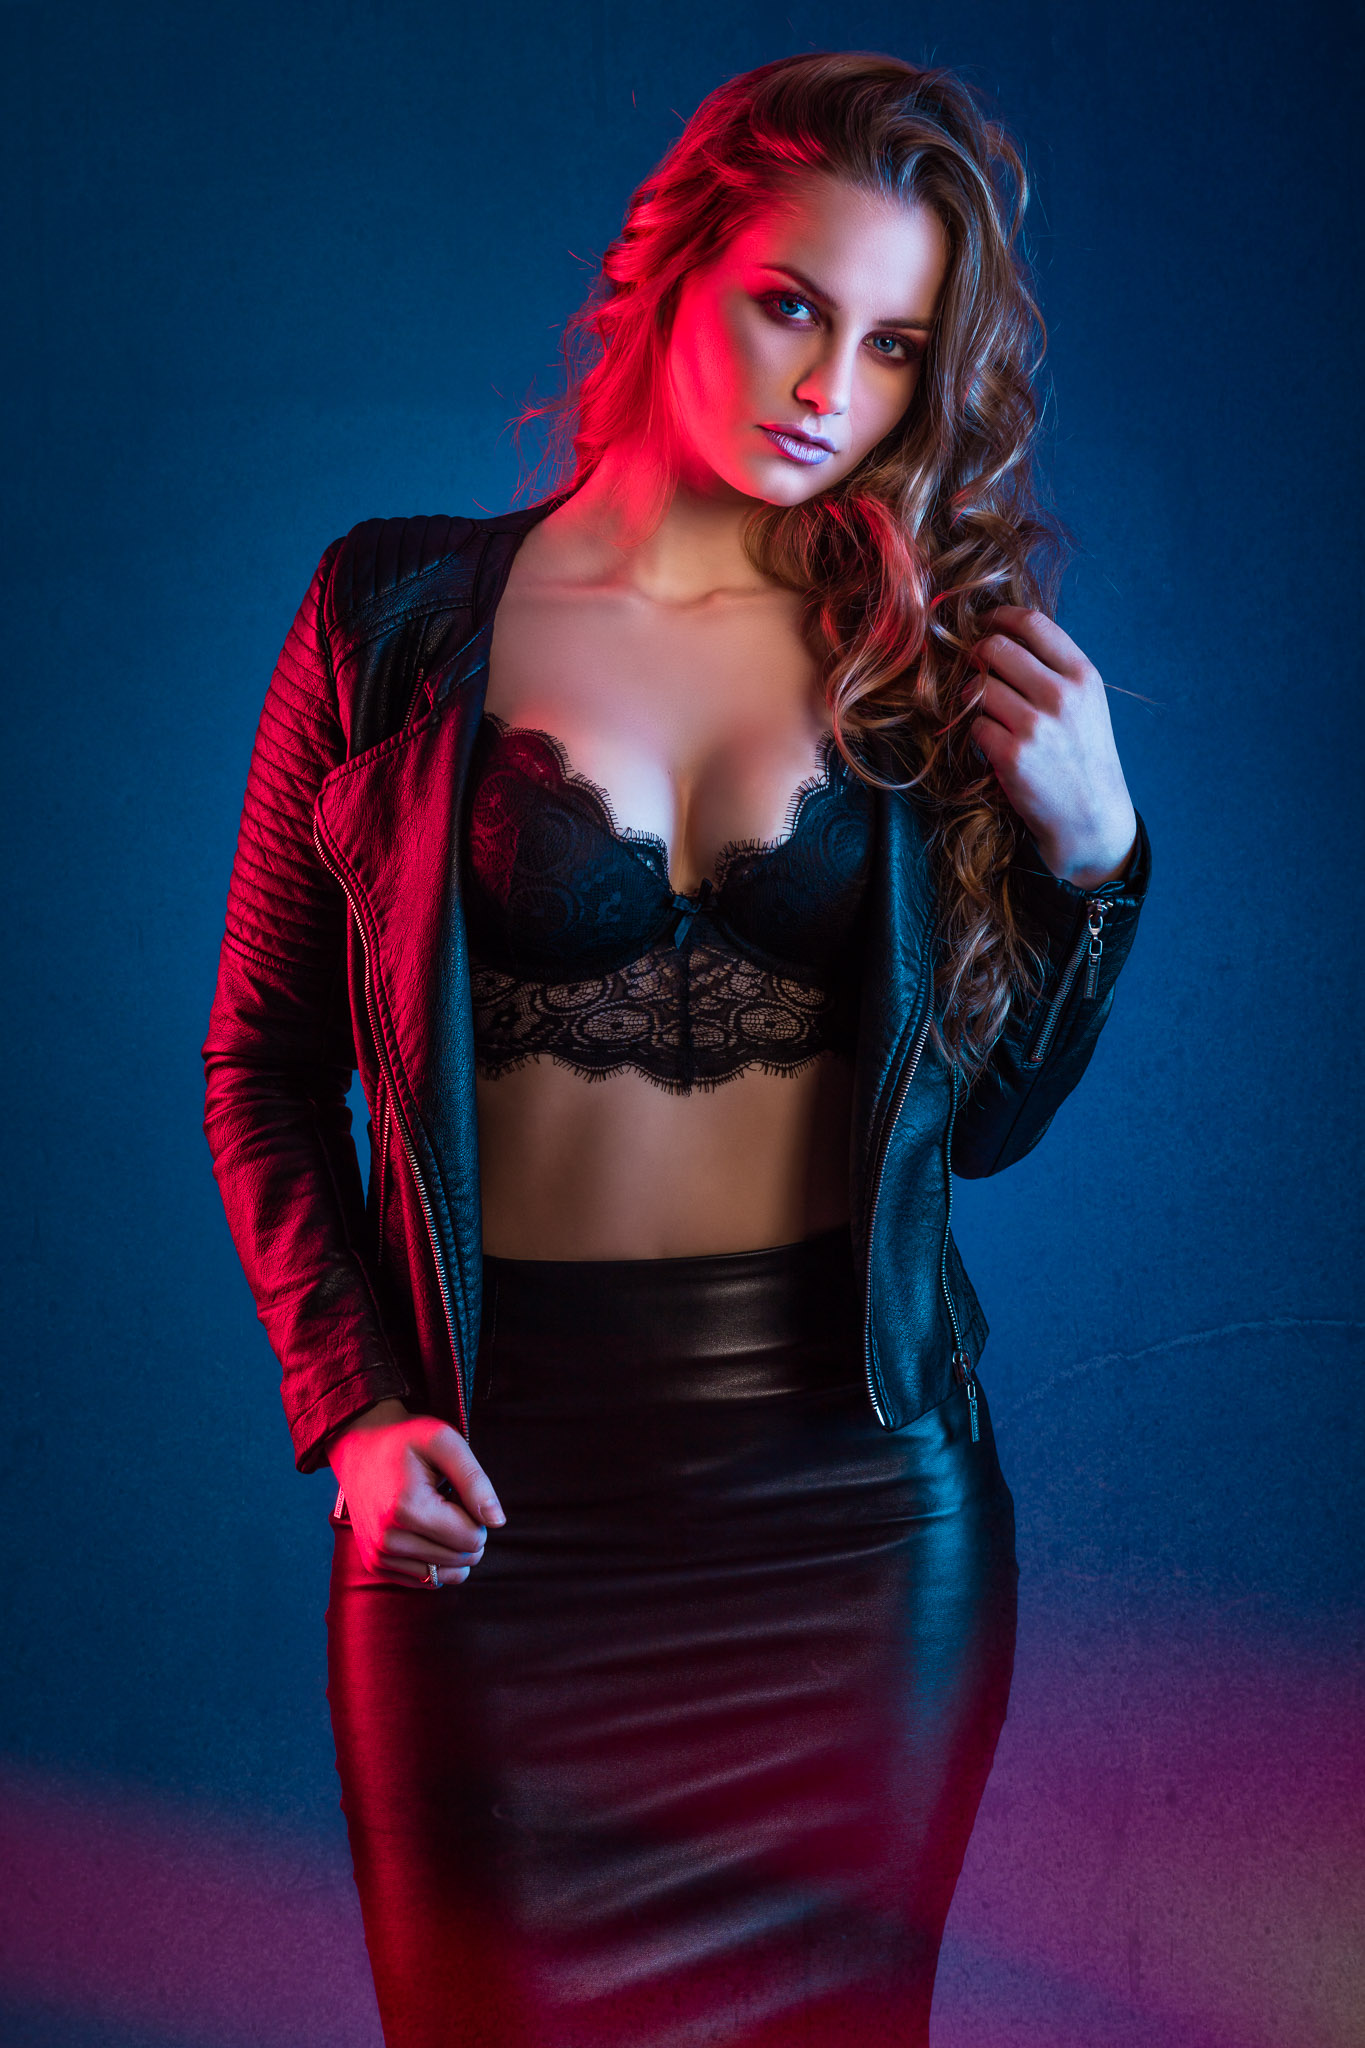 Romi in leather and lingerie